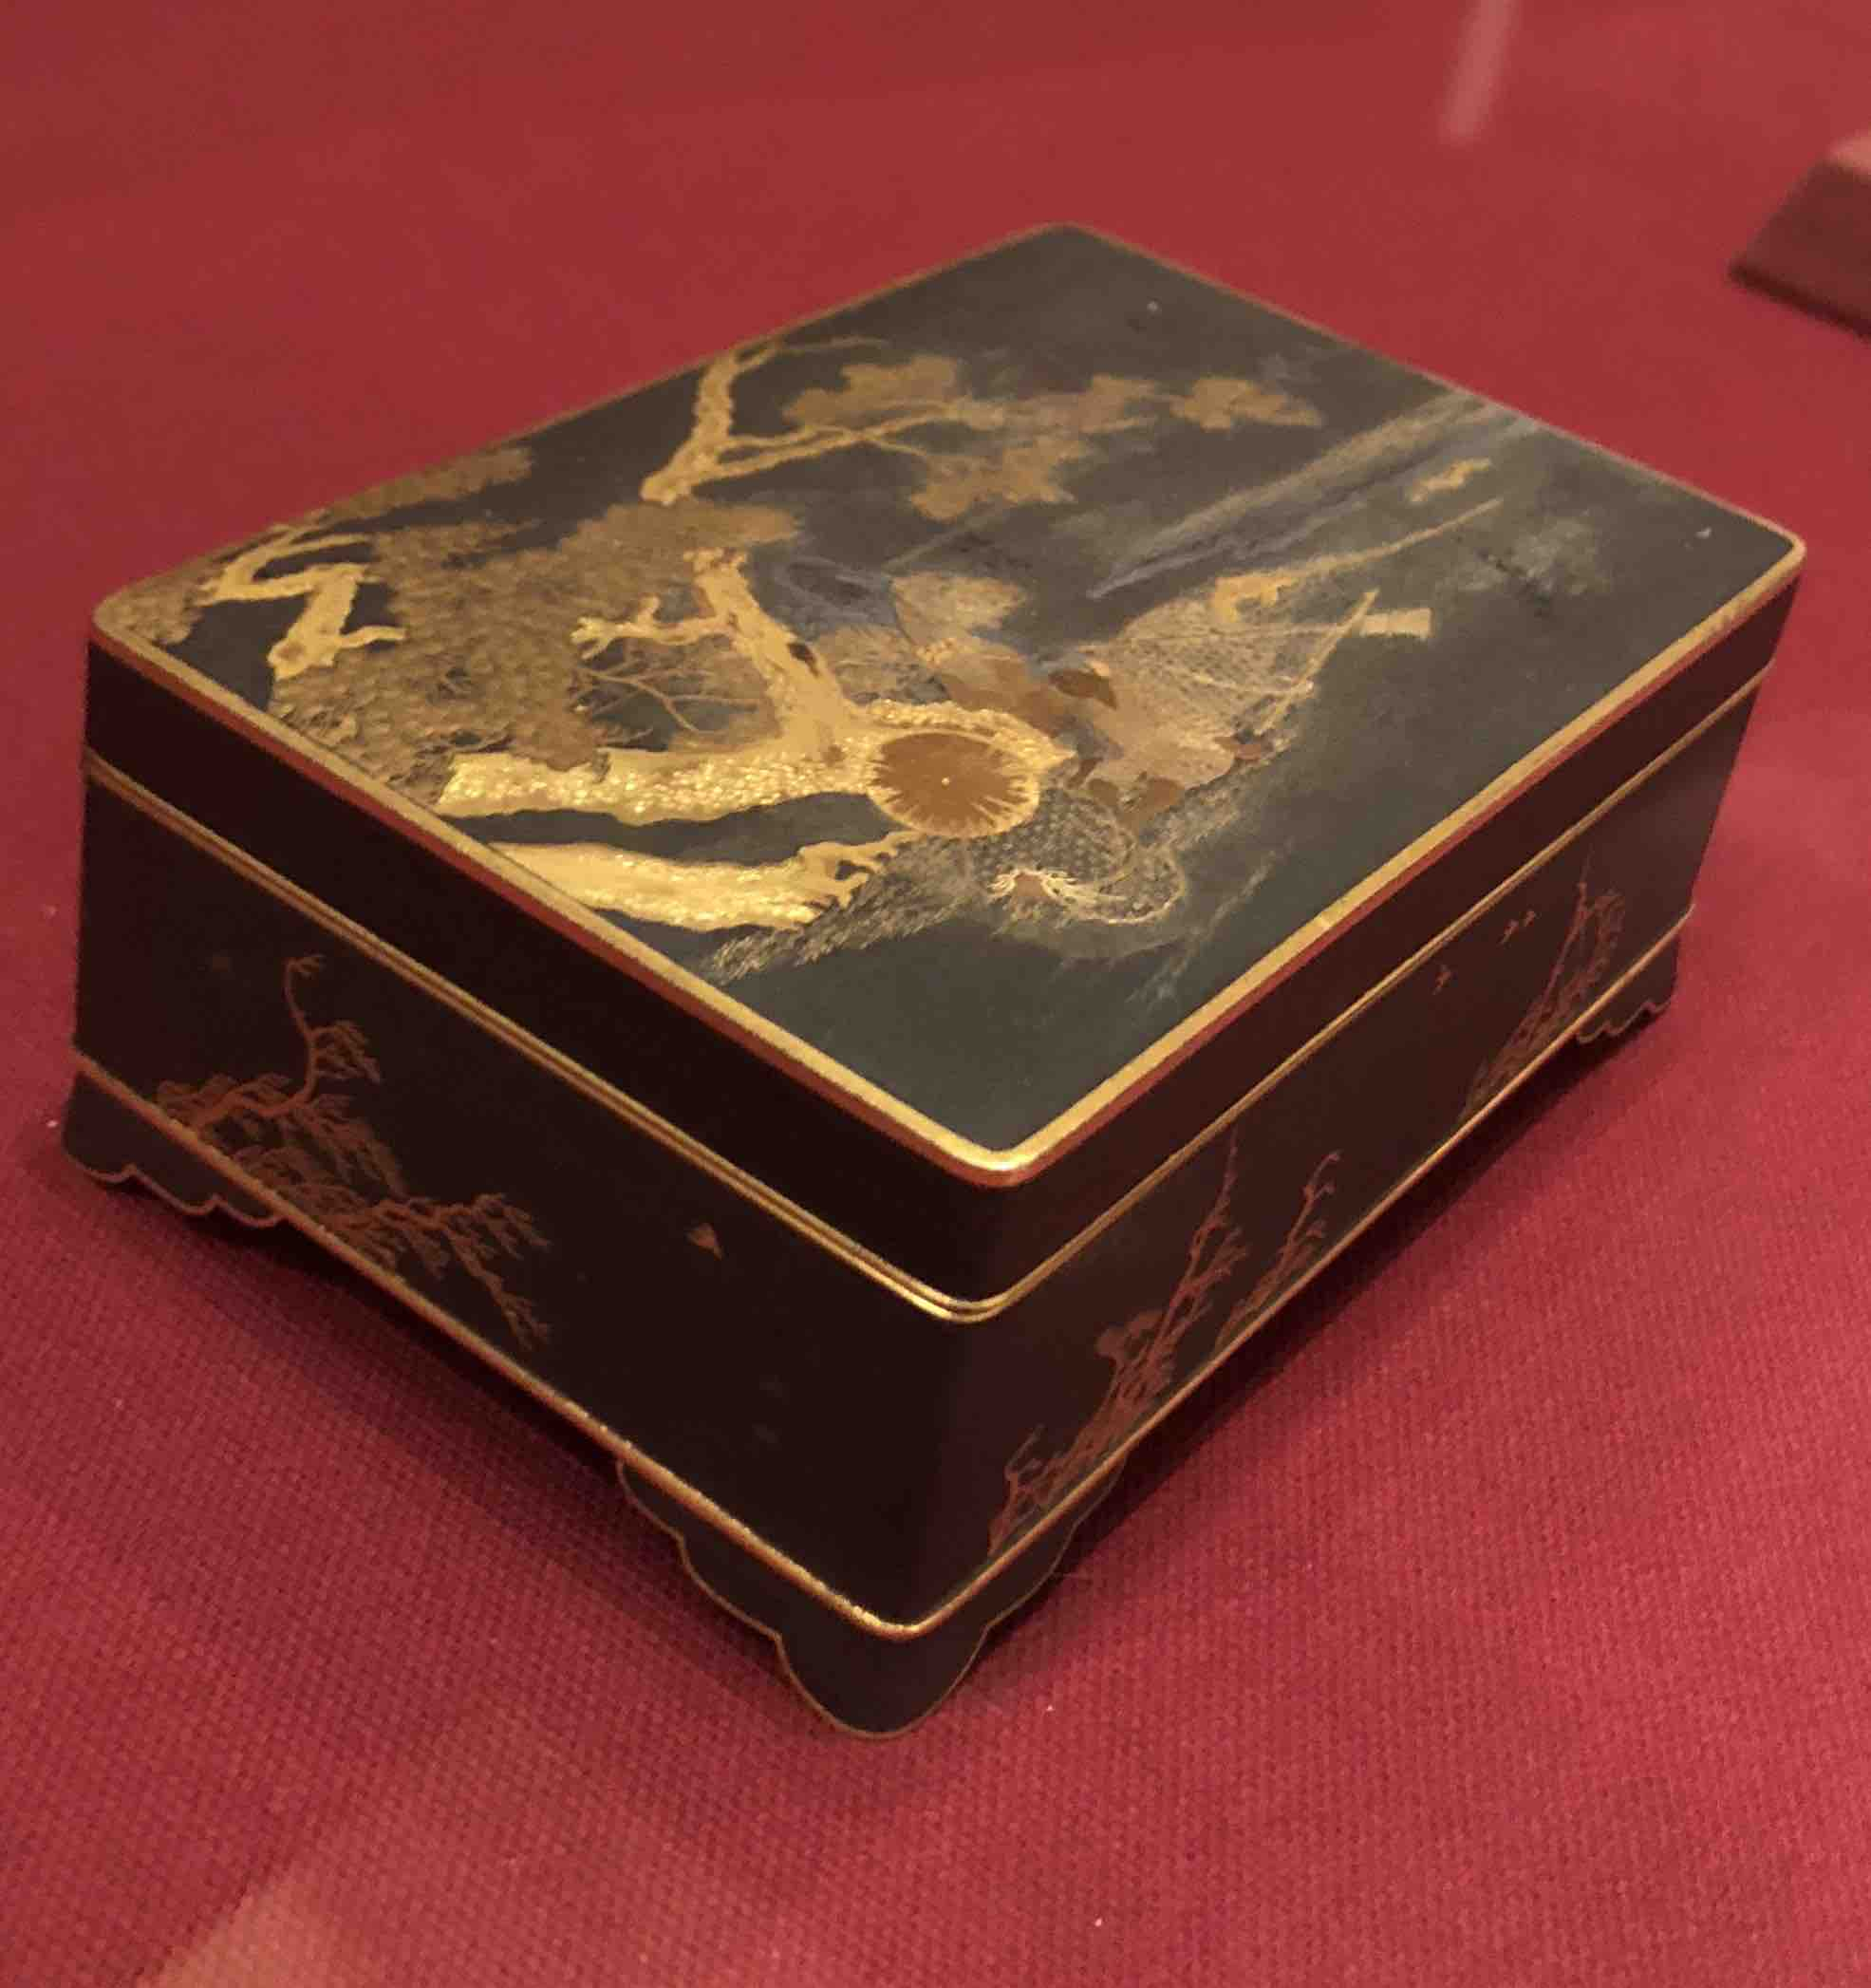 Artist Unknown, Box with Fisherman Motif